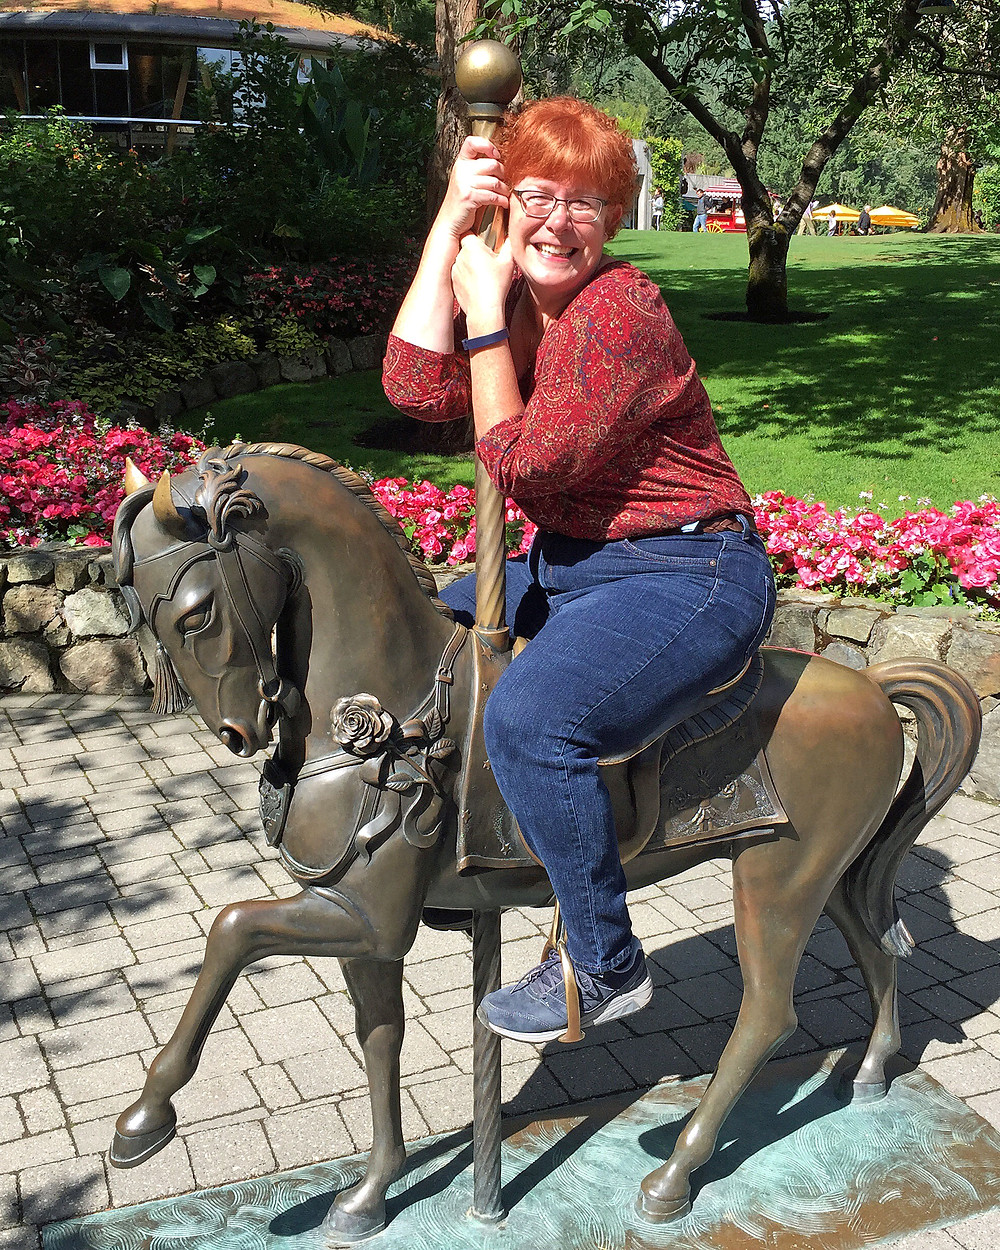 Suzy 2.0 on a merry go round horse sculpture